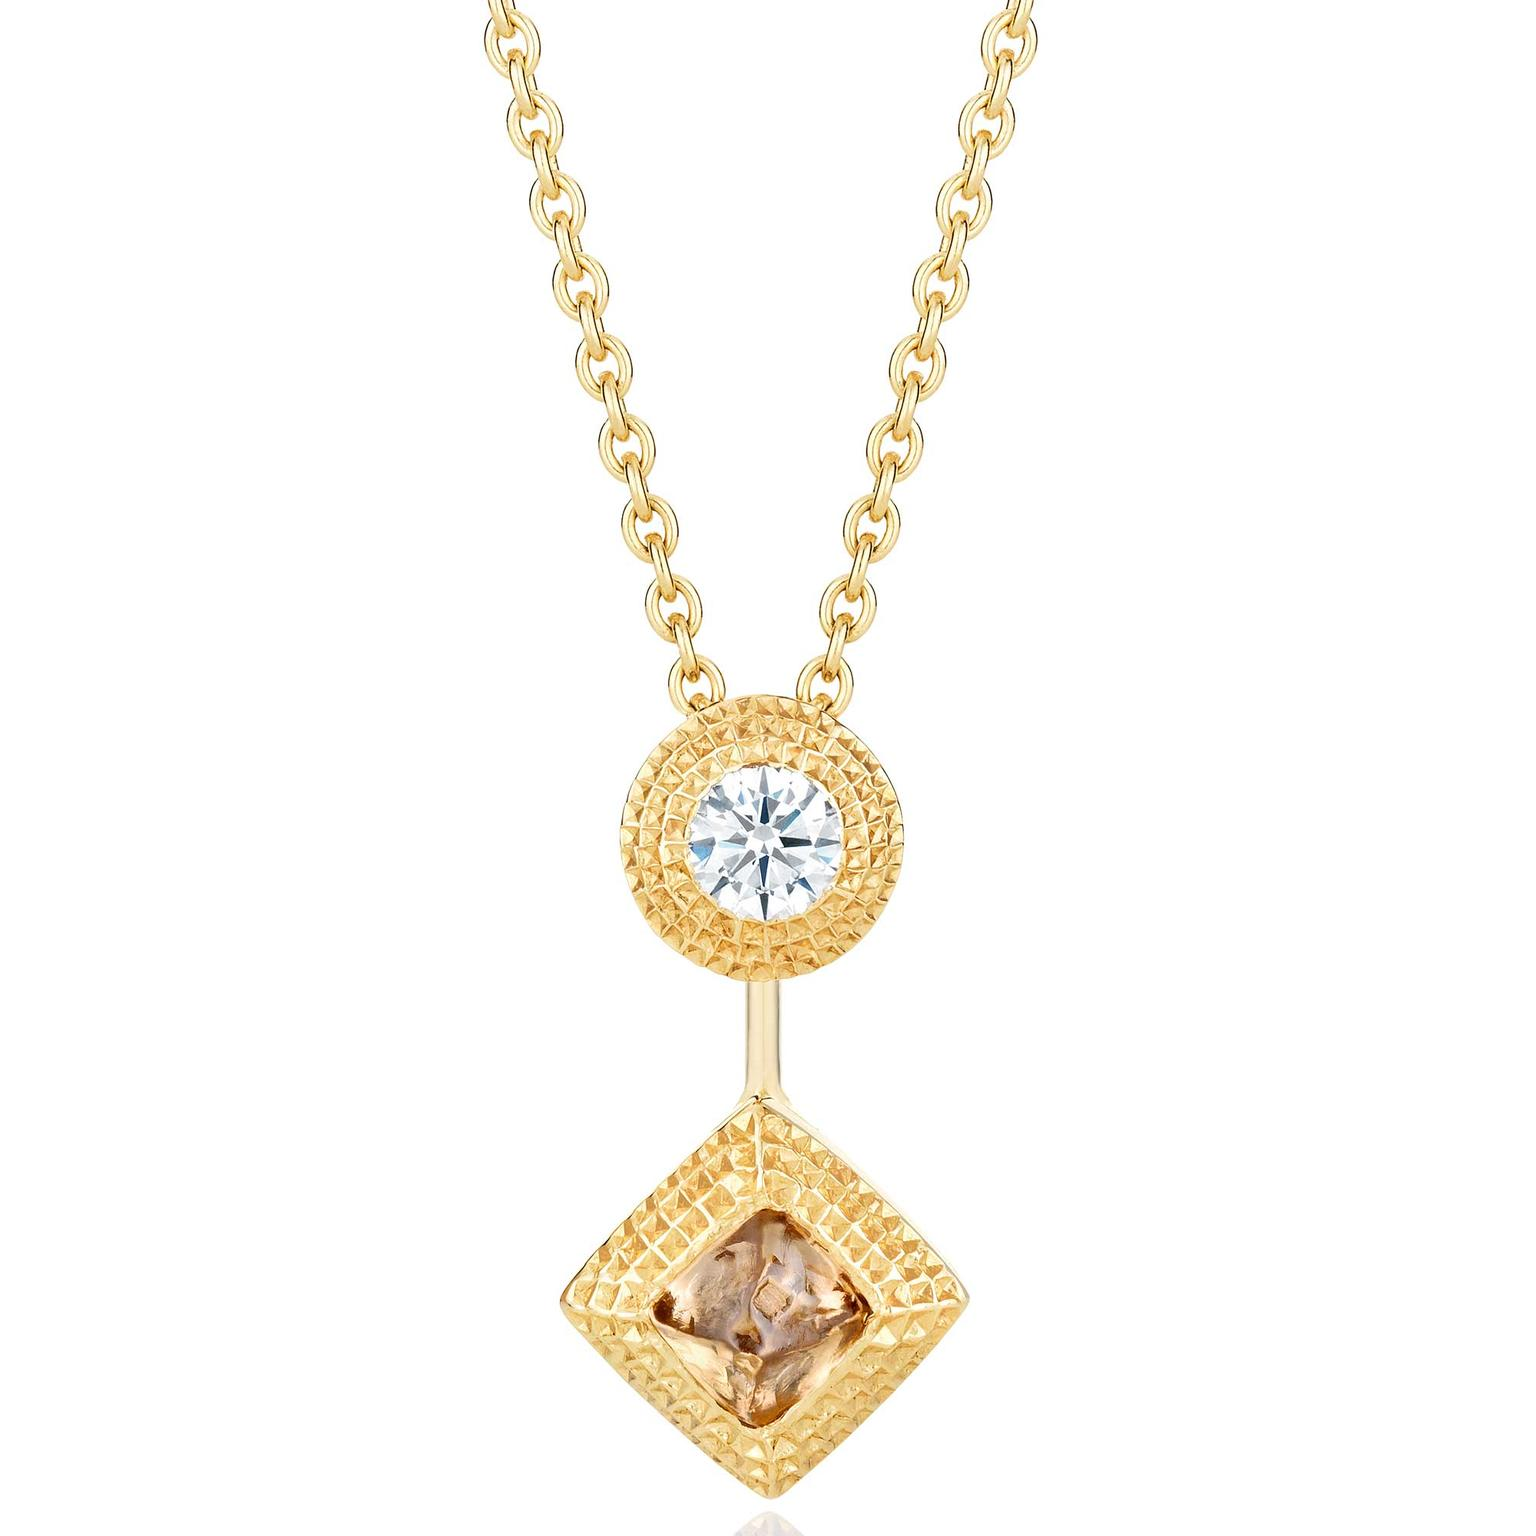 De Beers Talisman rough diamond pendant necklace